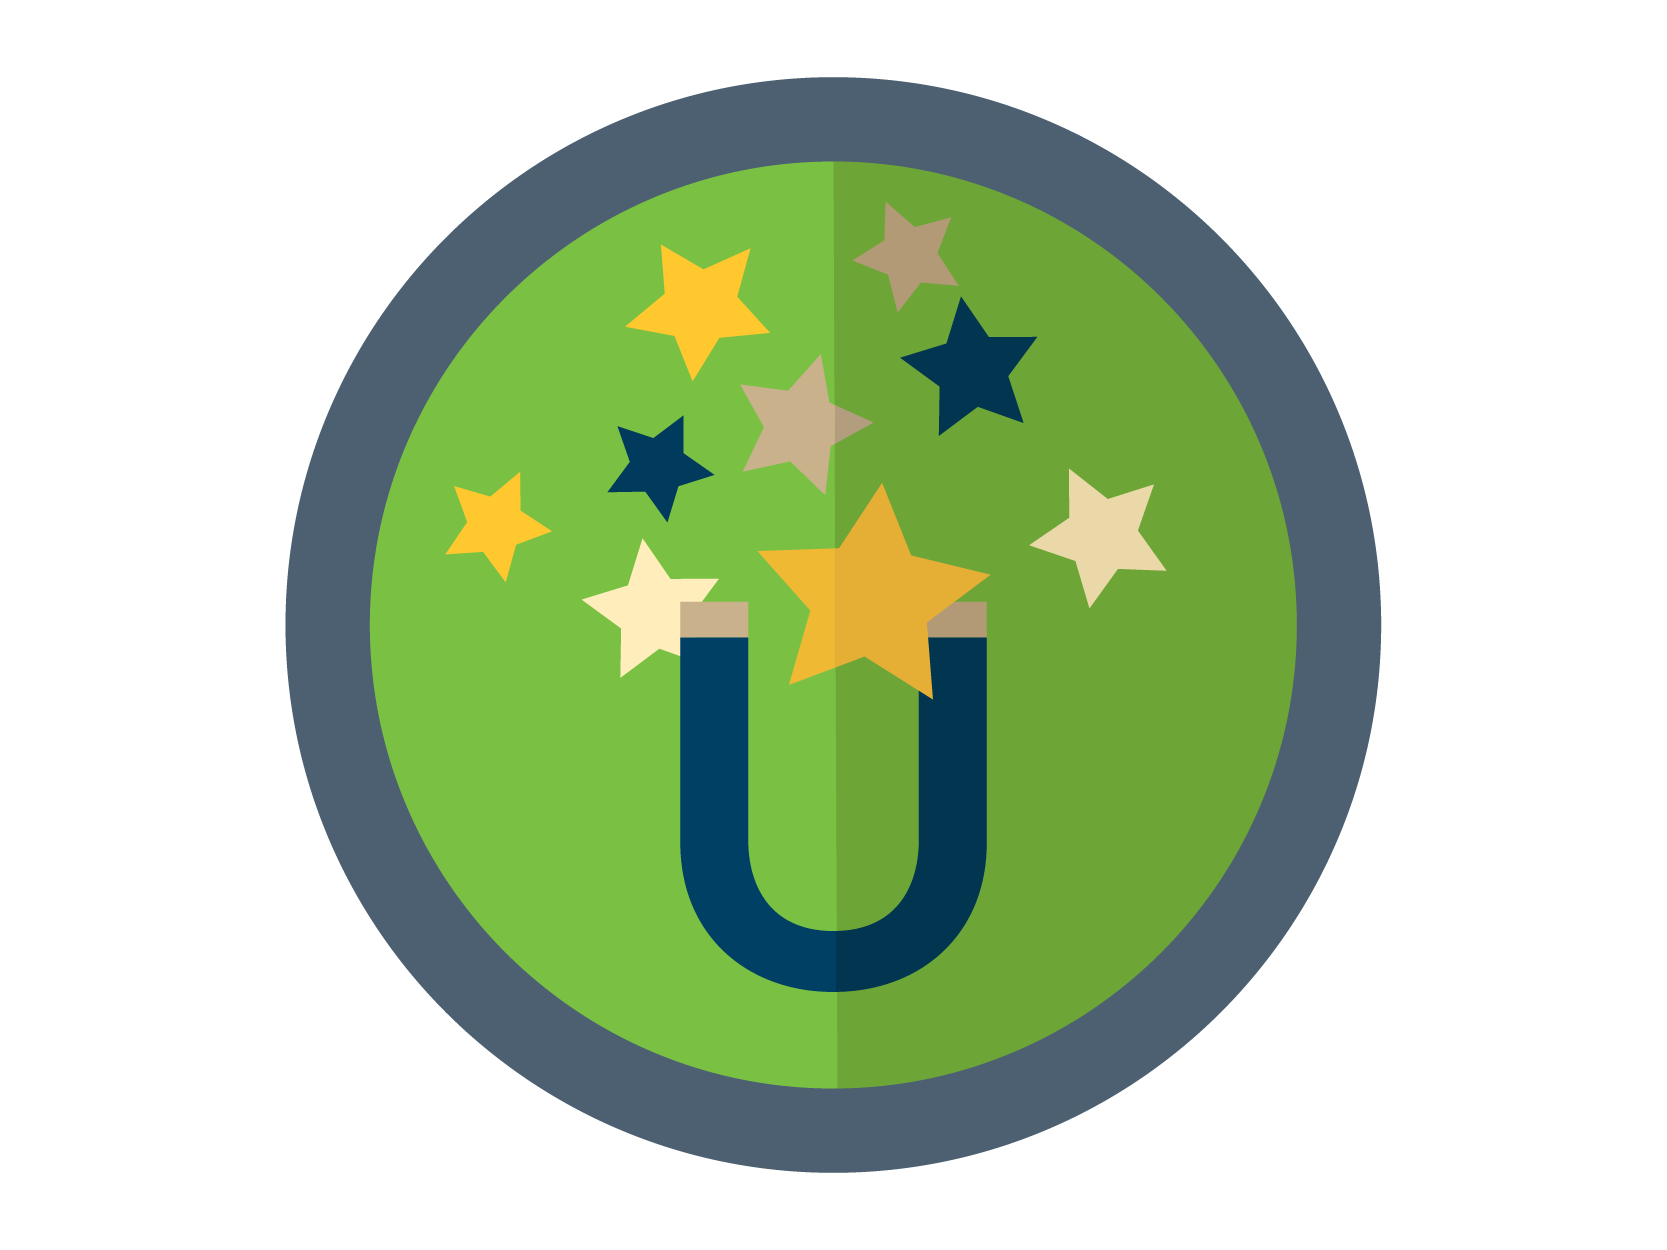 Talent Attraction Initiative Icon: A magnet with stars attracted to it